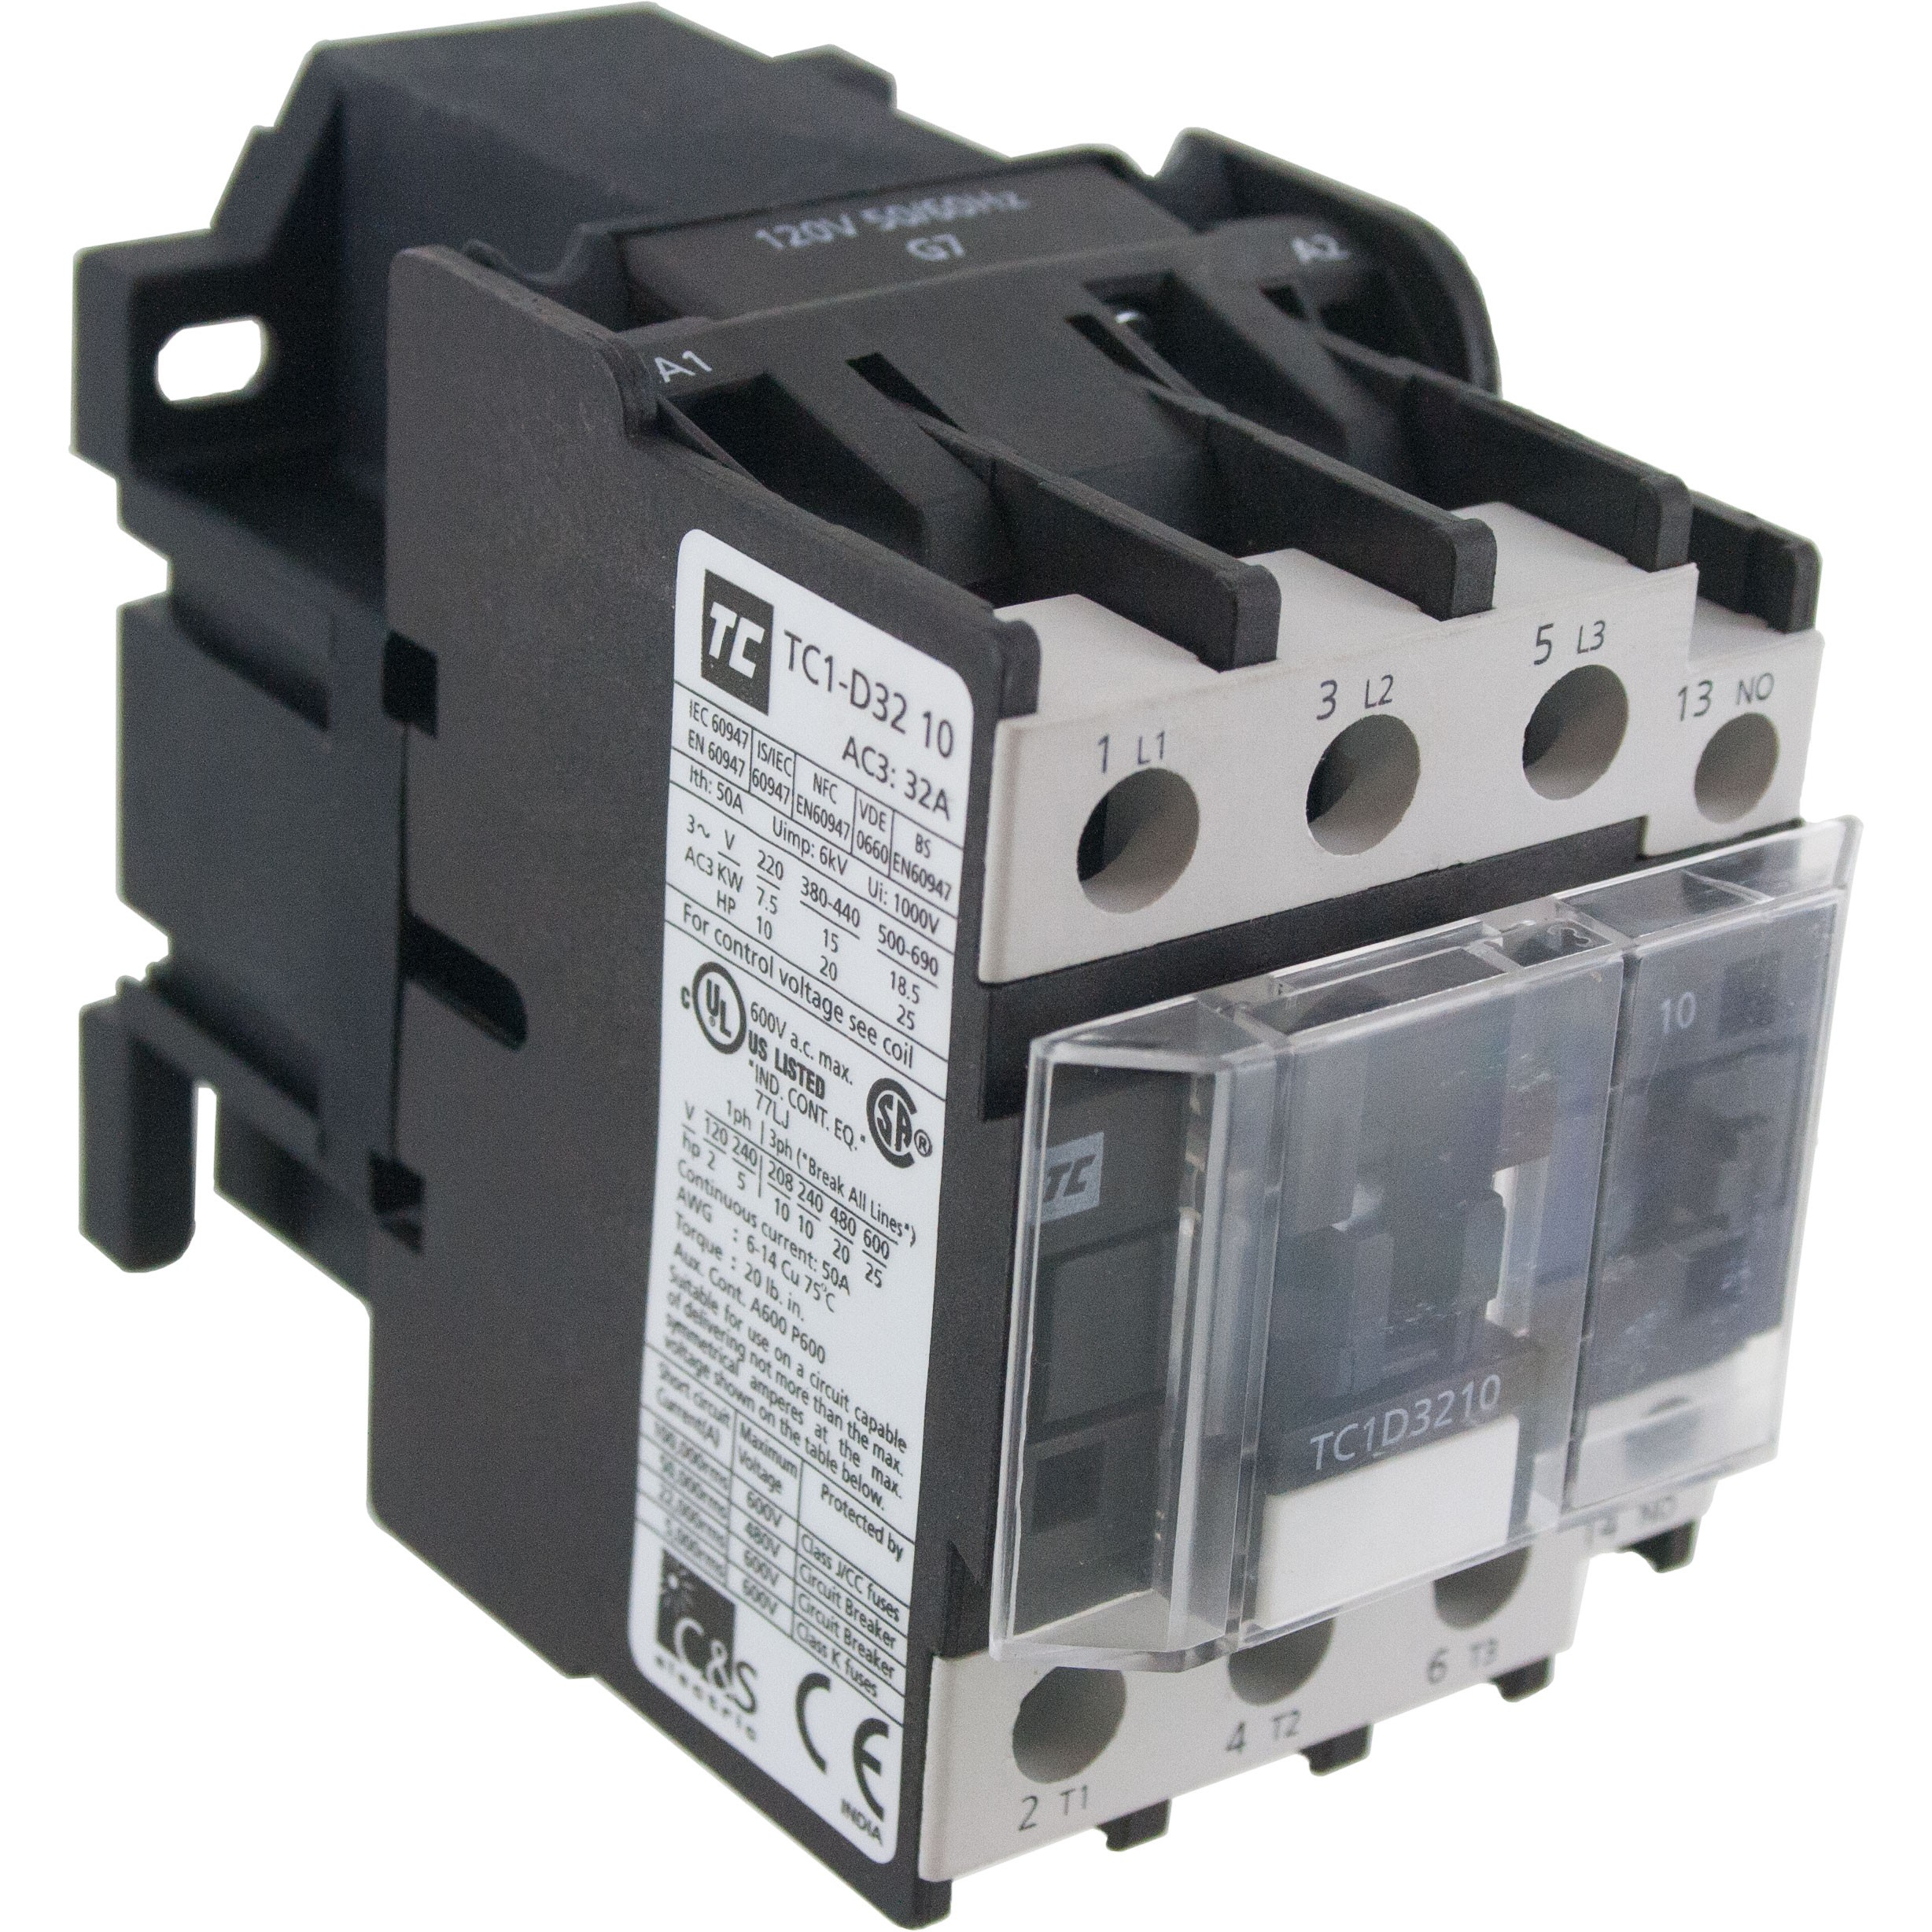 3 Pole Contactor 32 Amp 240 Volt AC Coil Angle